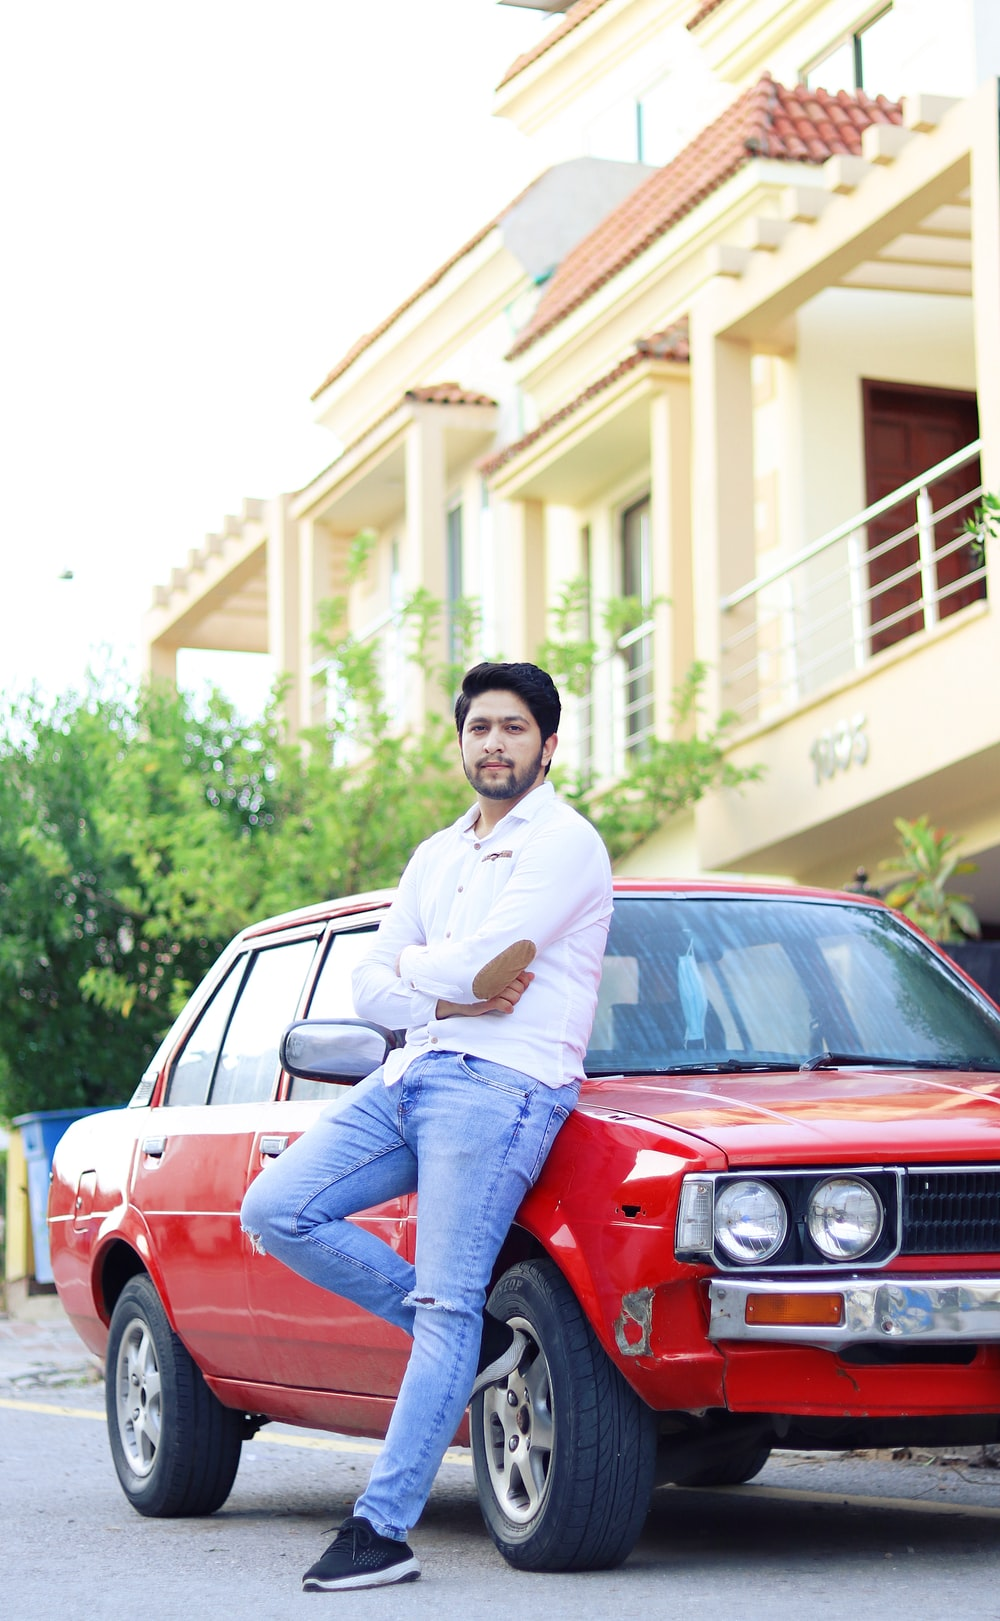 man in white dress shirt and blue denim jeans sitting on red car